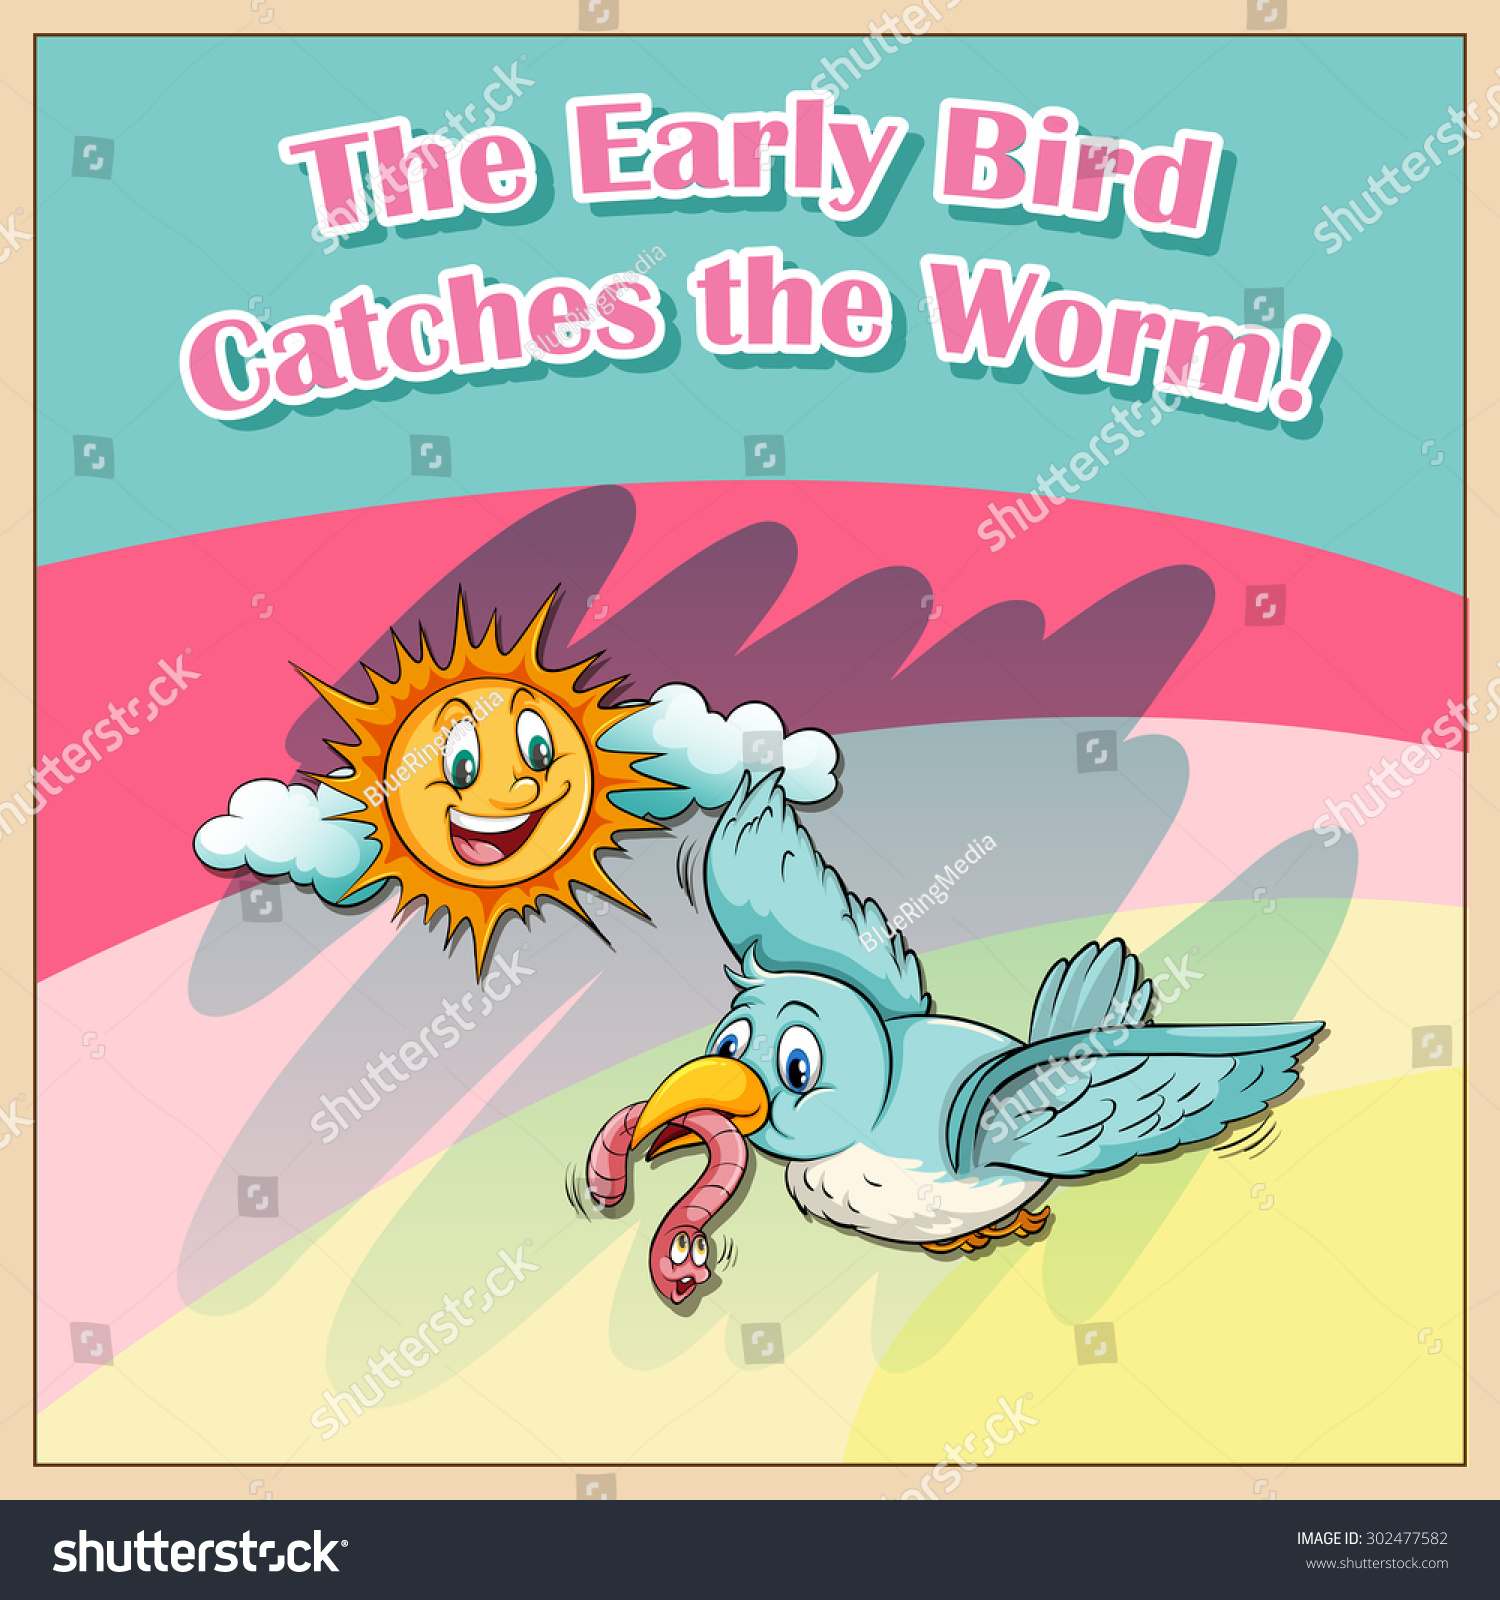 The meaning and origin of the expression: The early bird catches the worm